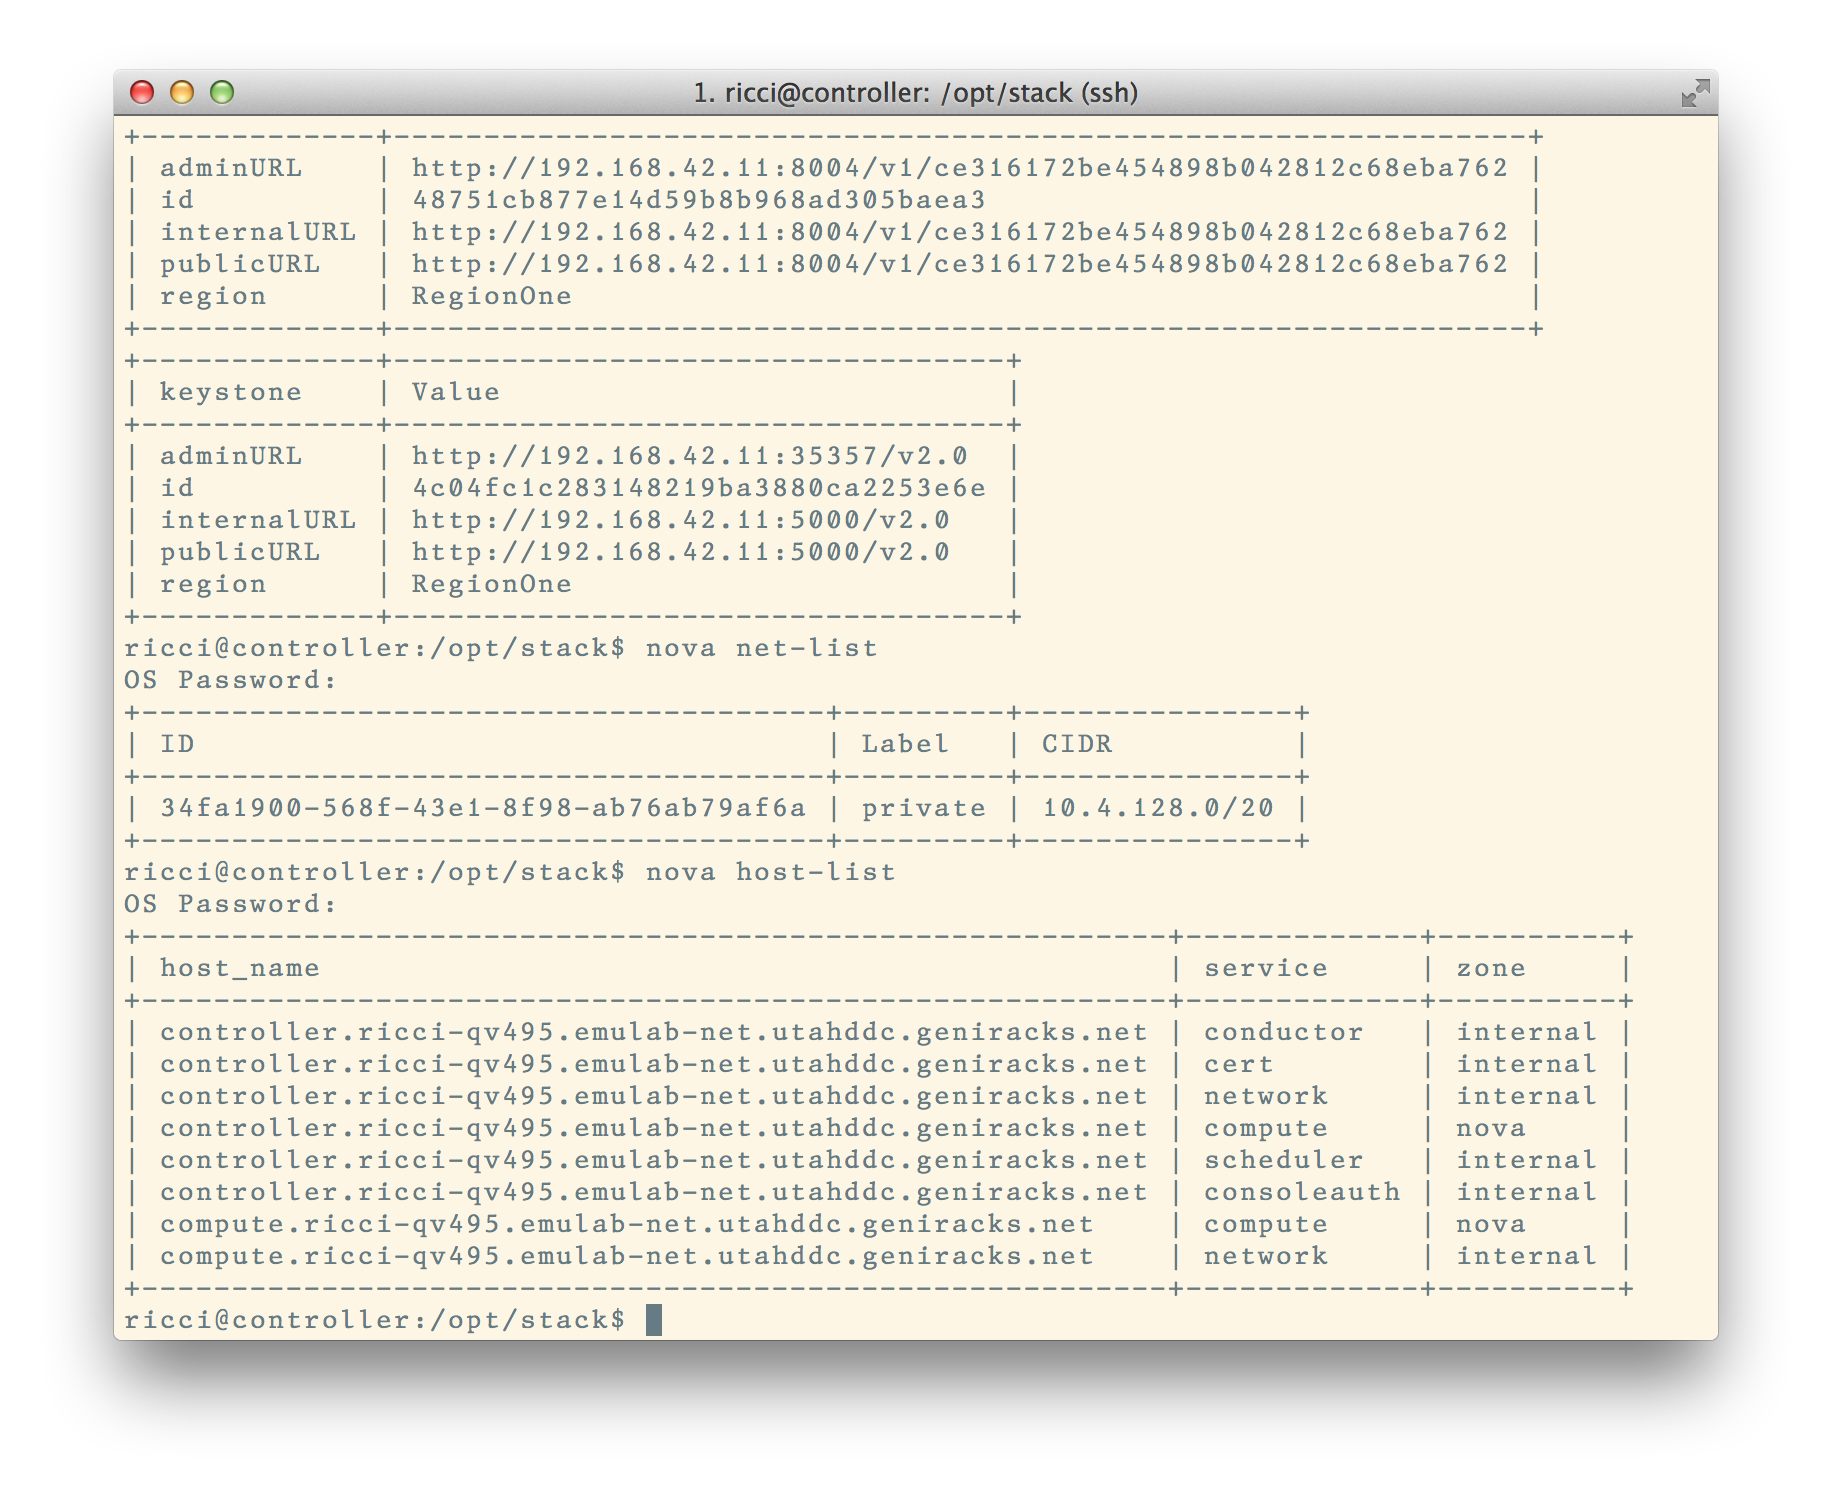 screenshots/clab/openstack-shell.png